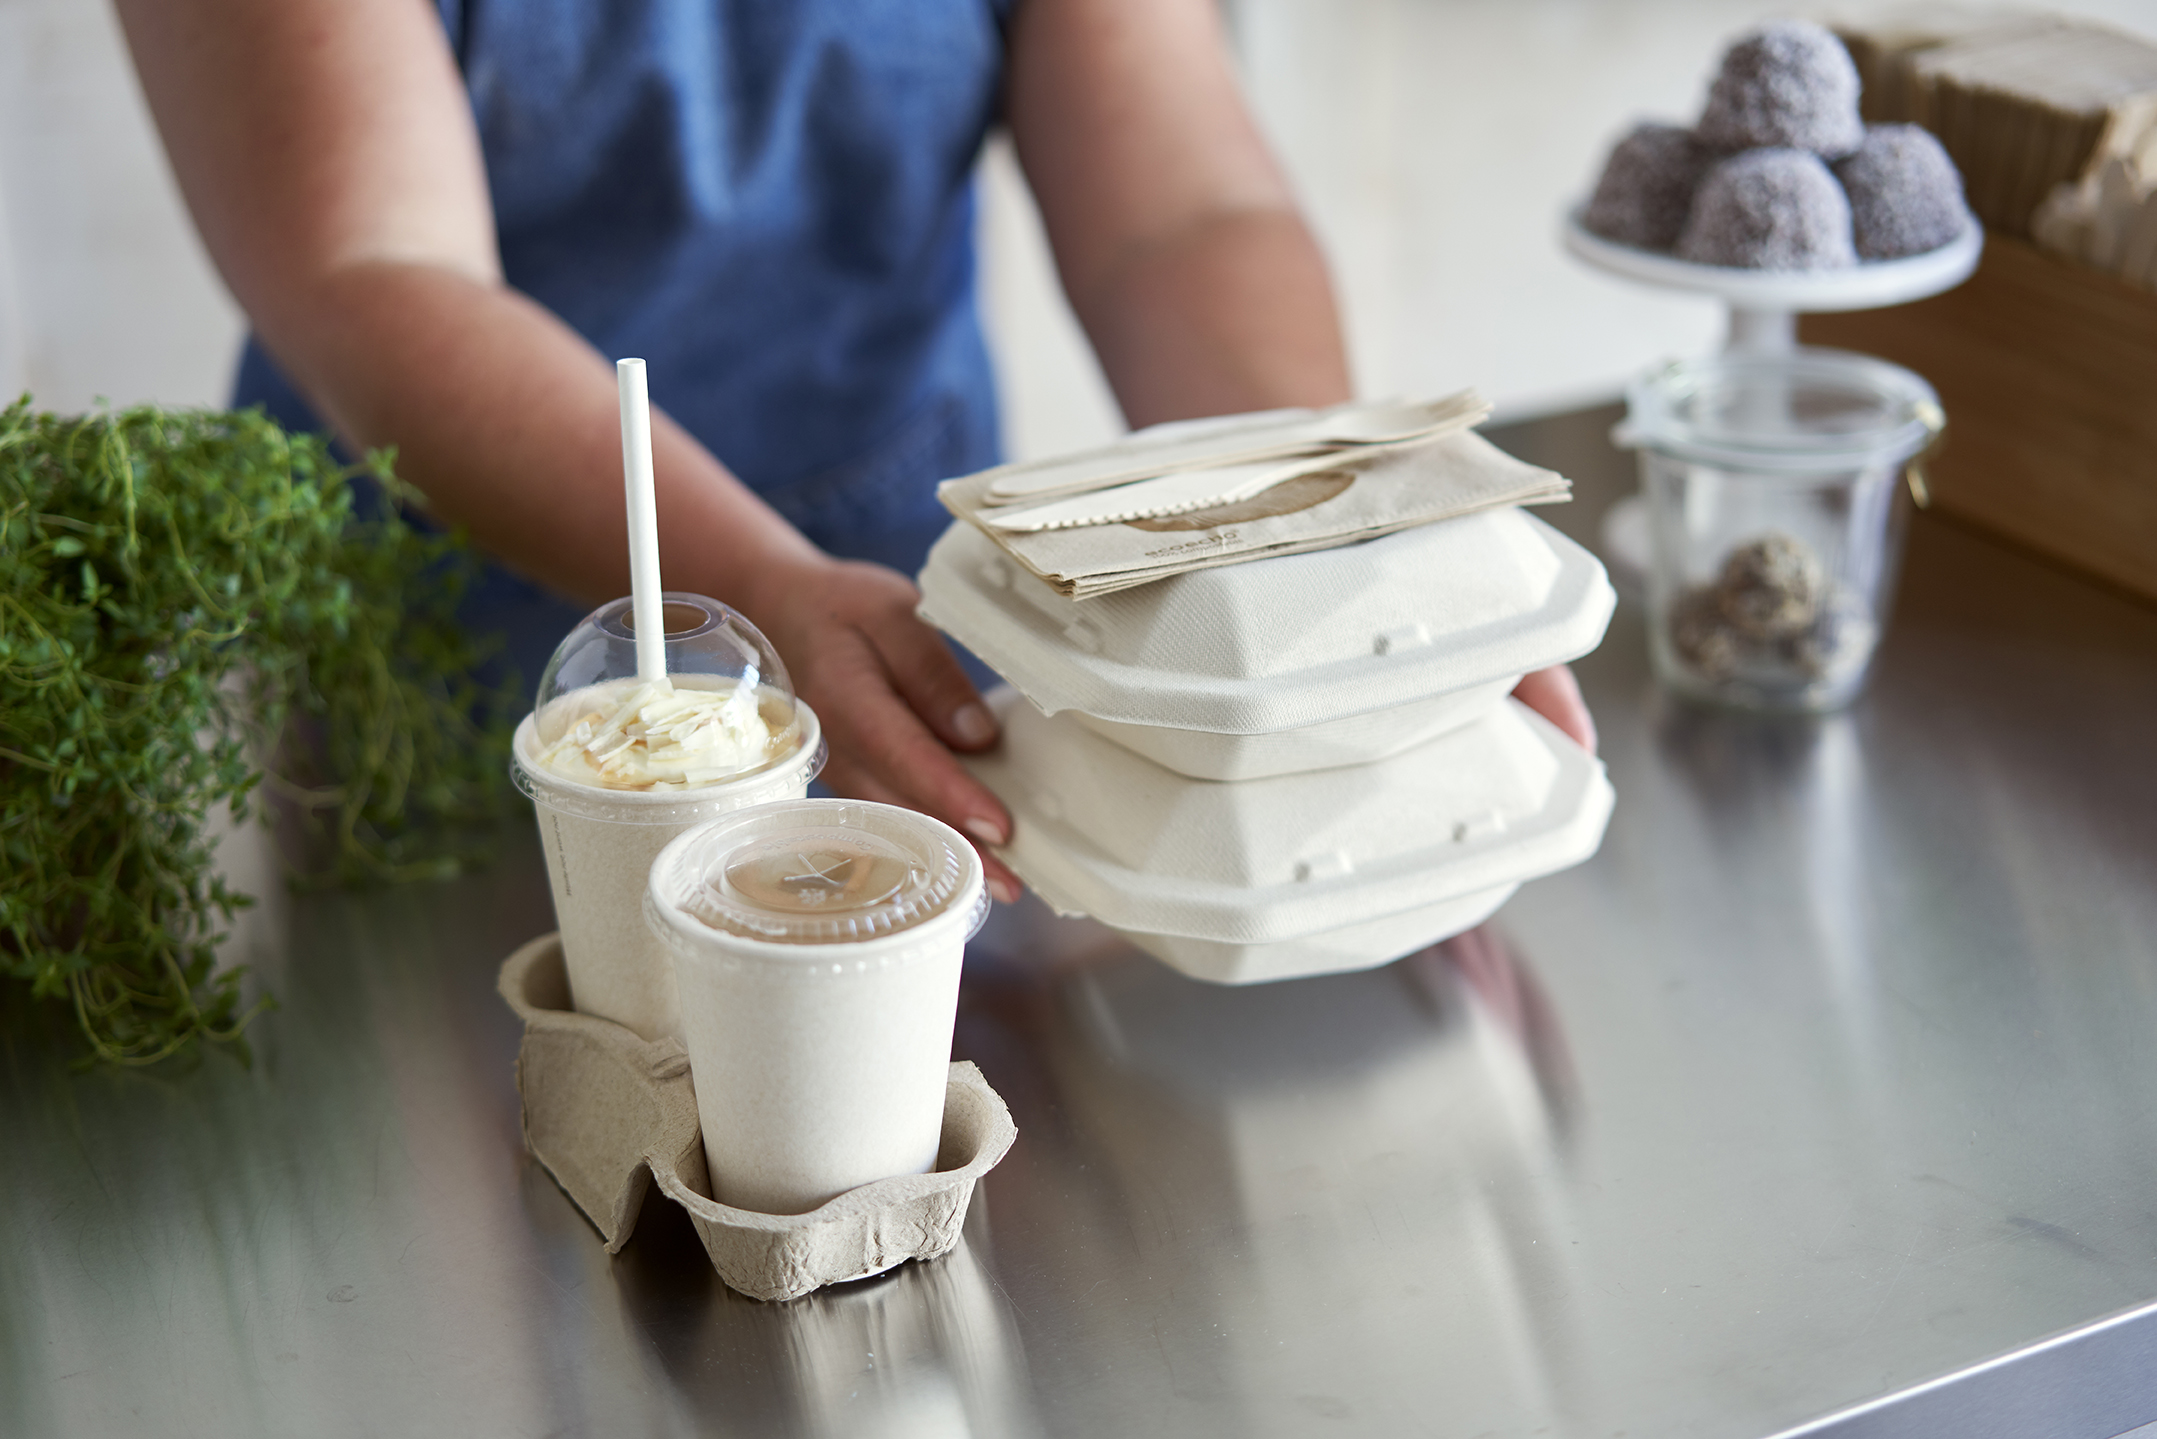 incartare_packaging-takeaway-deliveryfood_steetfood_caffetterie11